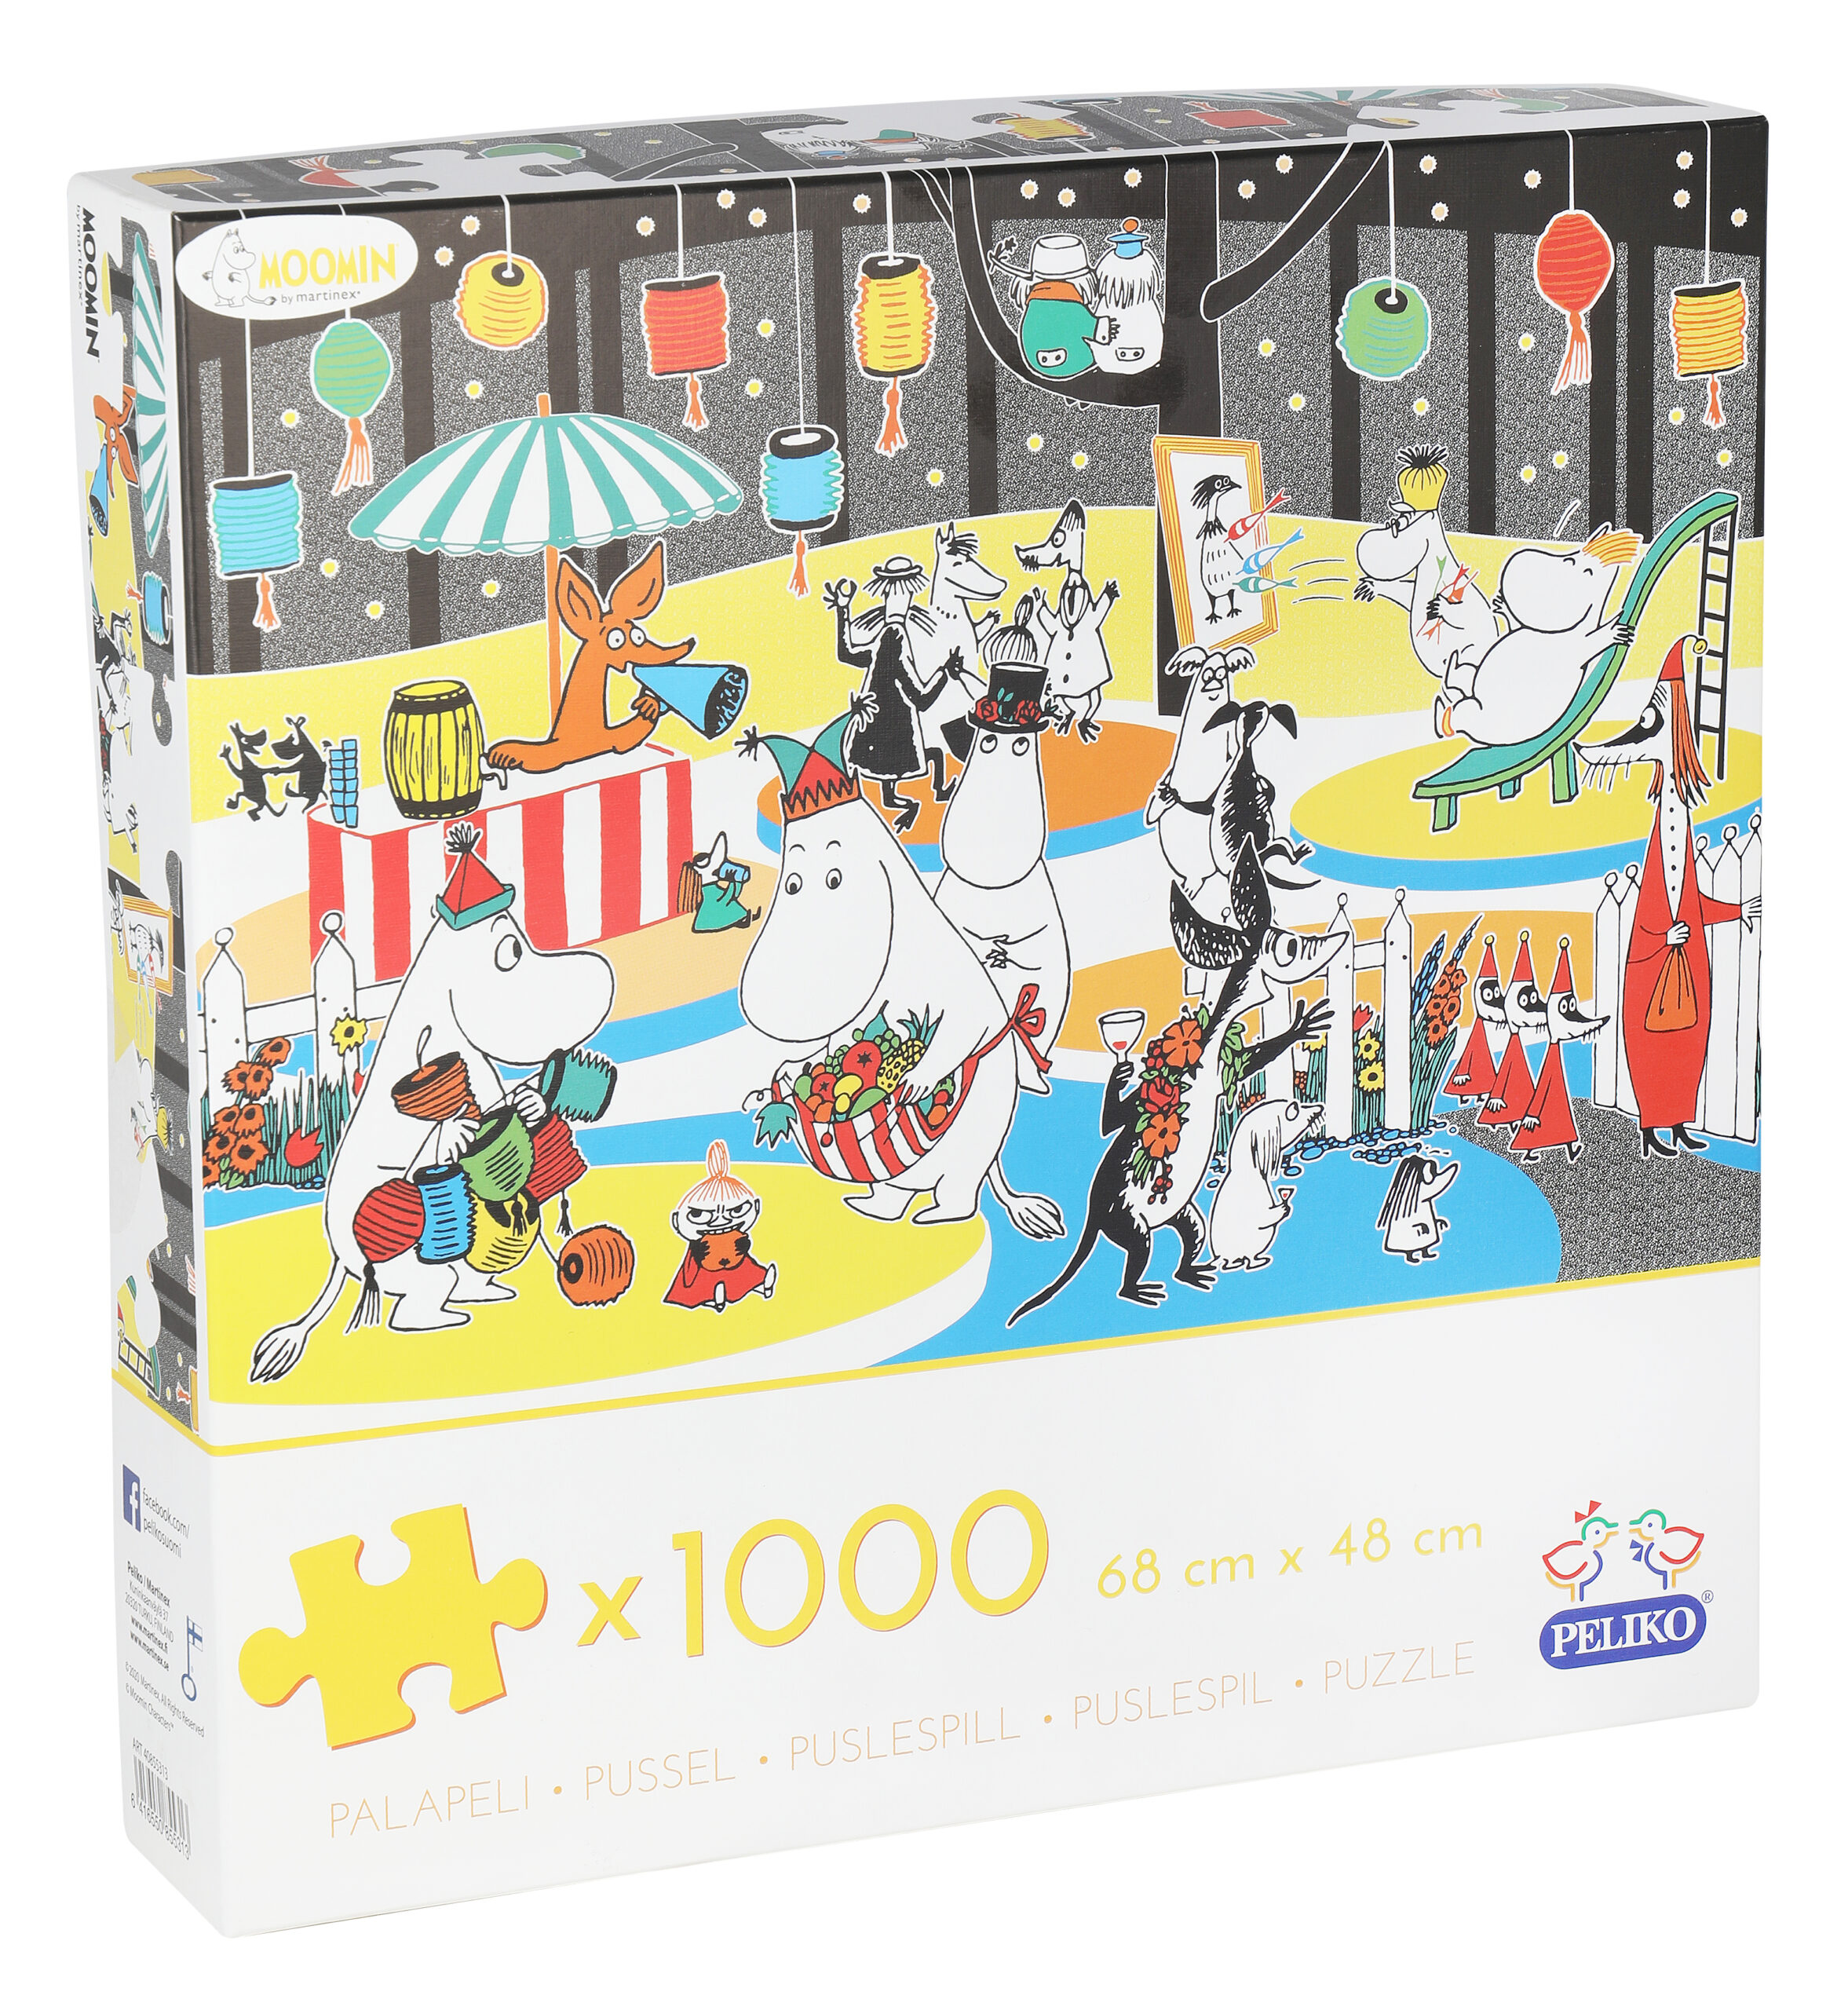 Martinex Moomin Jigsaw Puzzle 1000 Pieces Autumn Fest